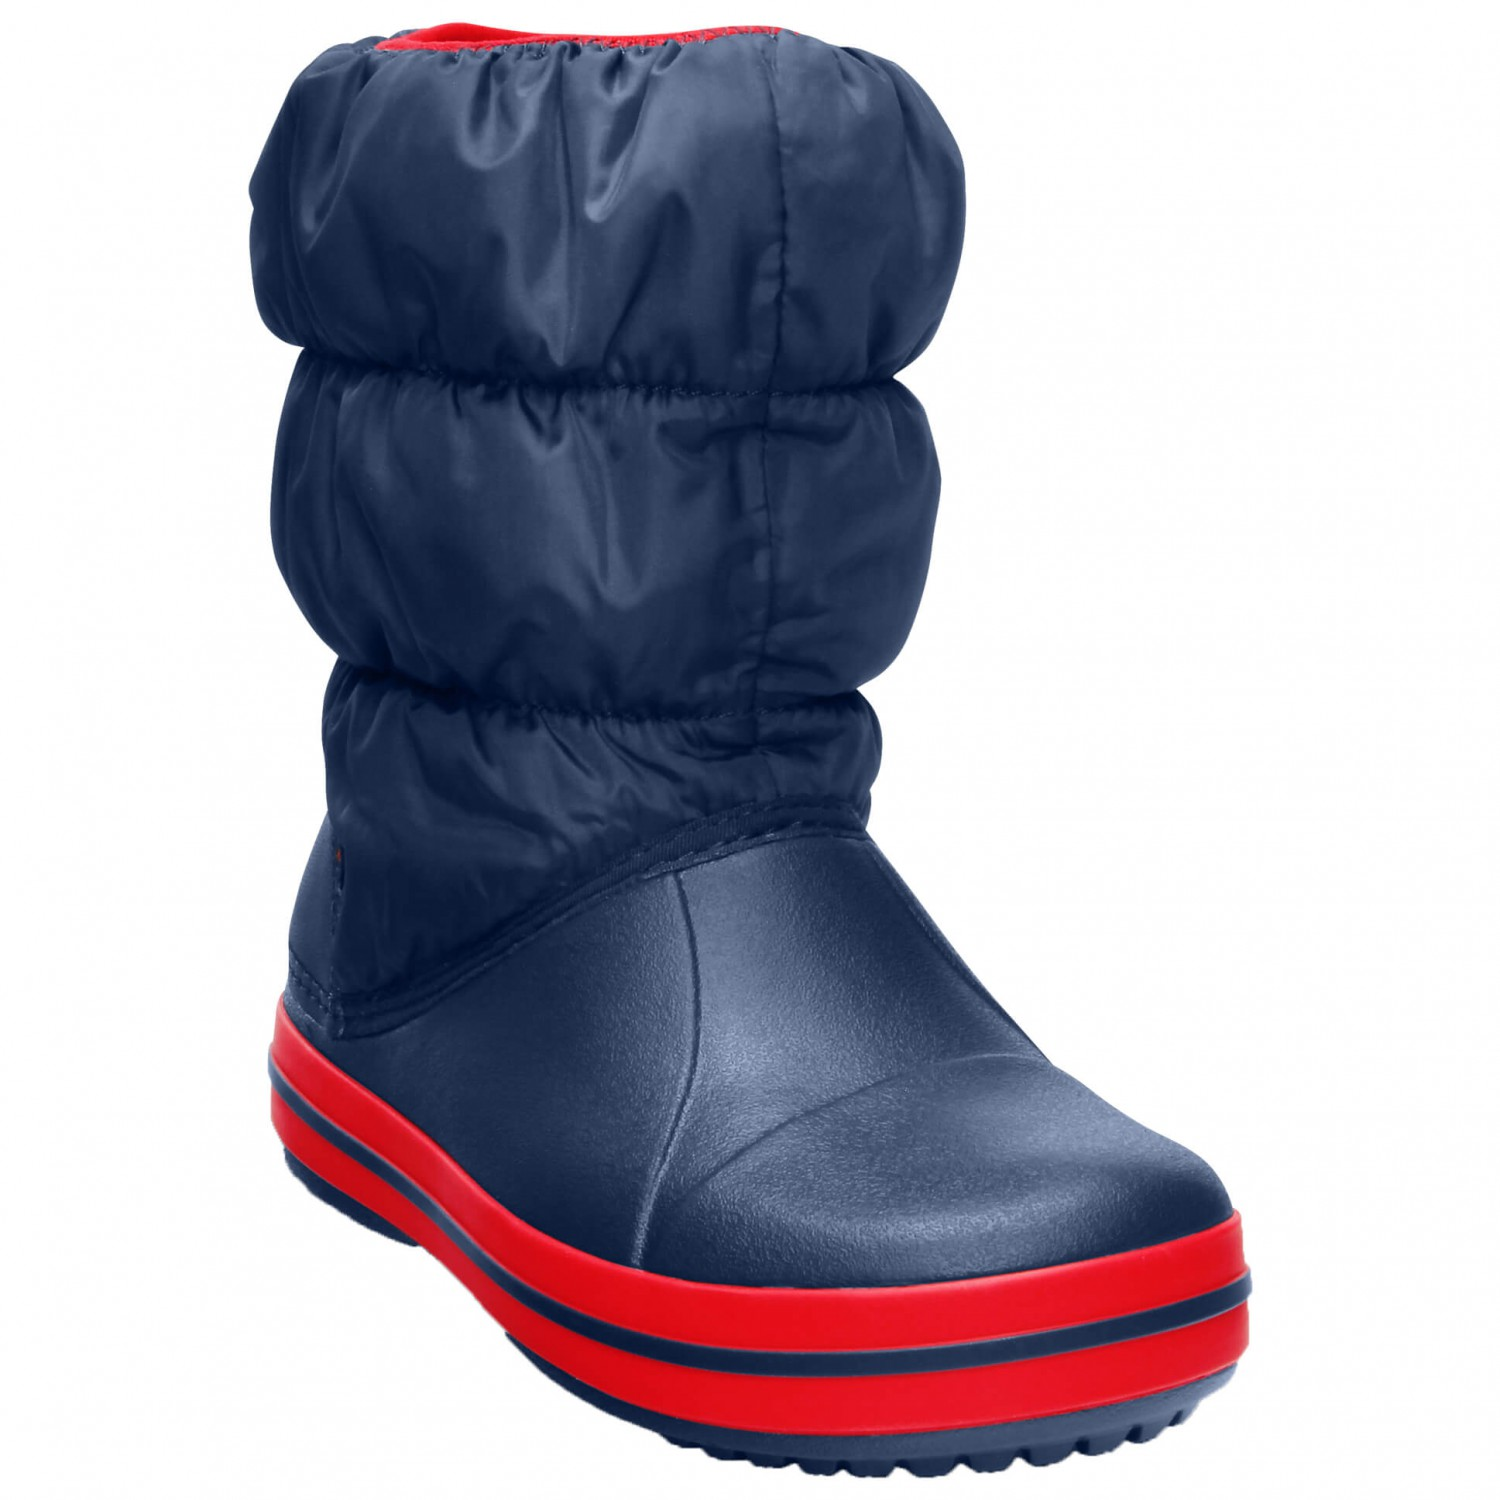 66dc7a55ff94c Crocs Winter Puff Boot - Winter Boots Kids